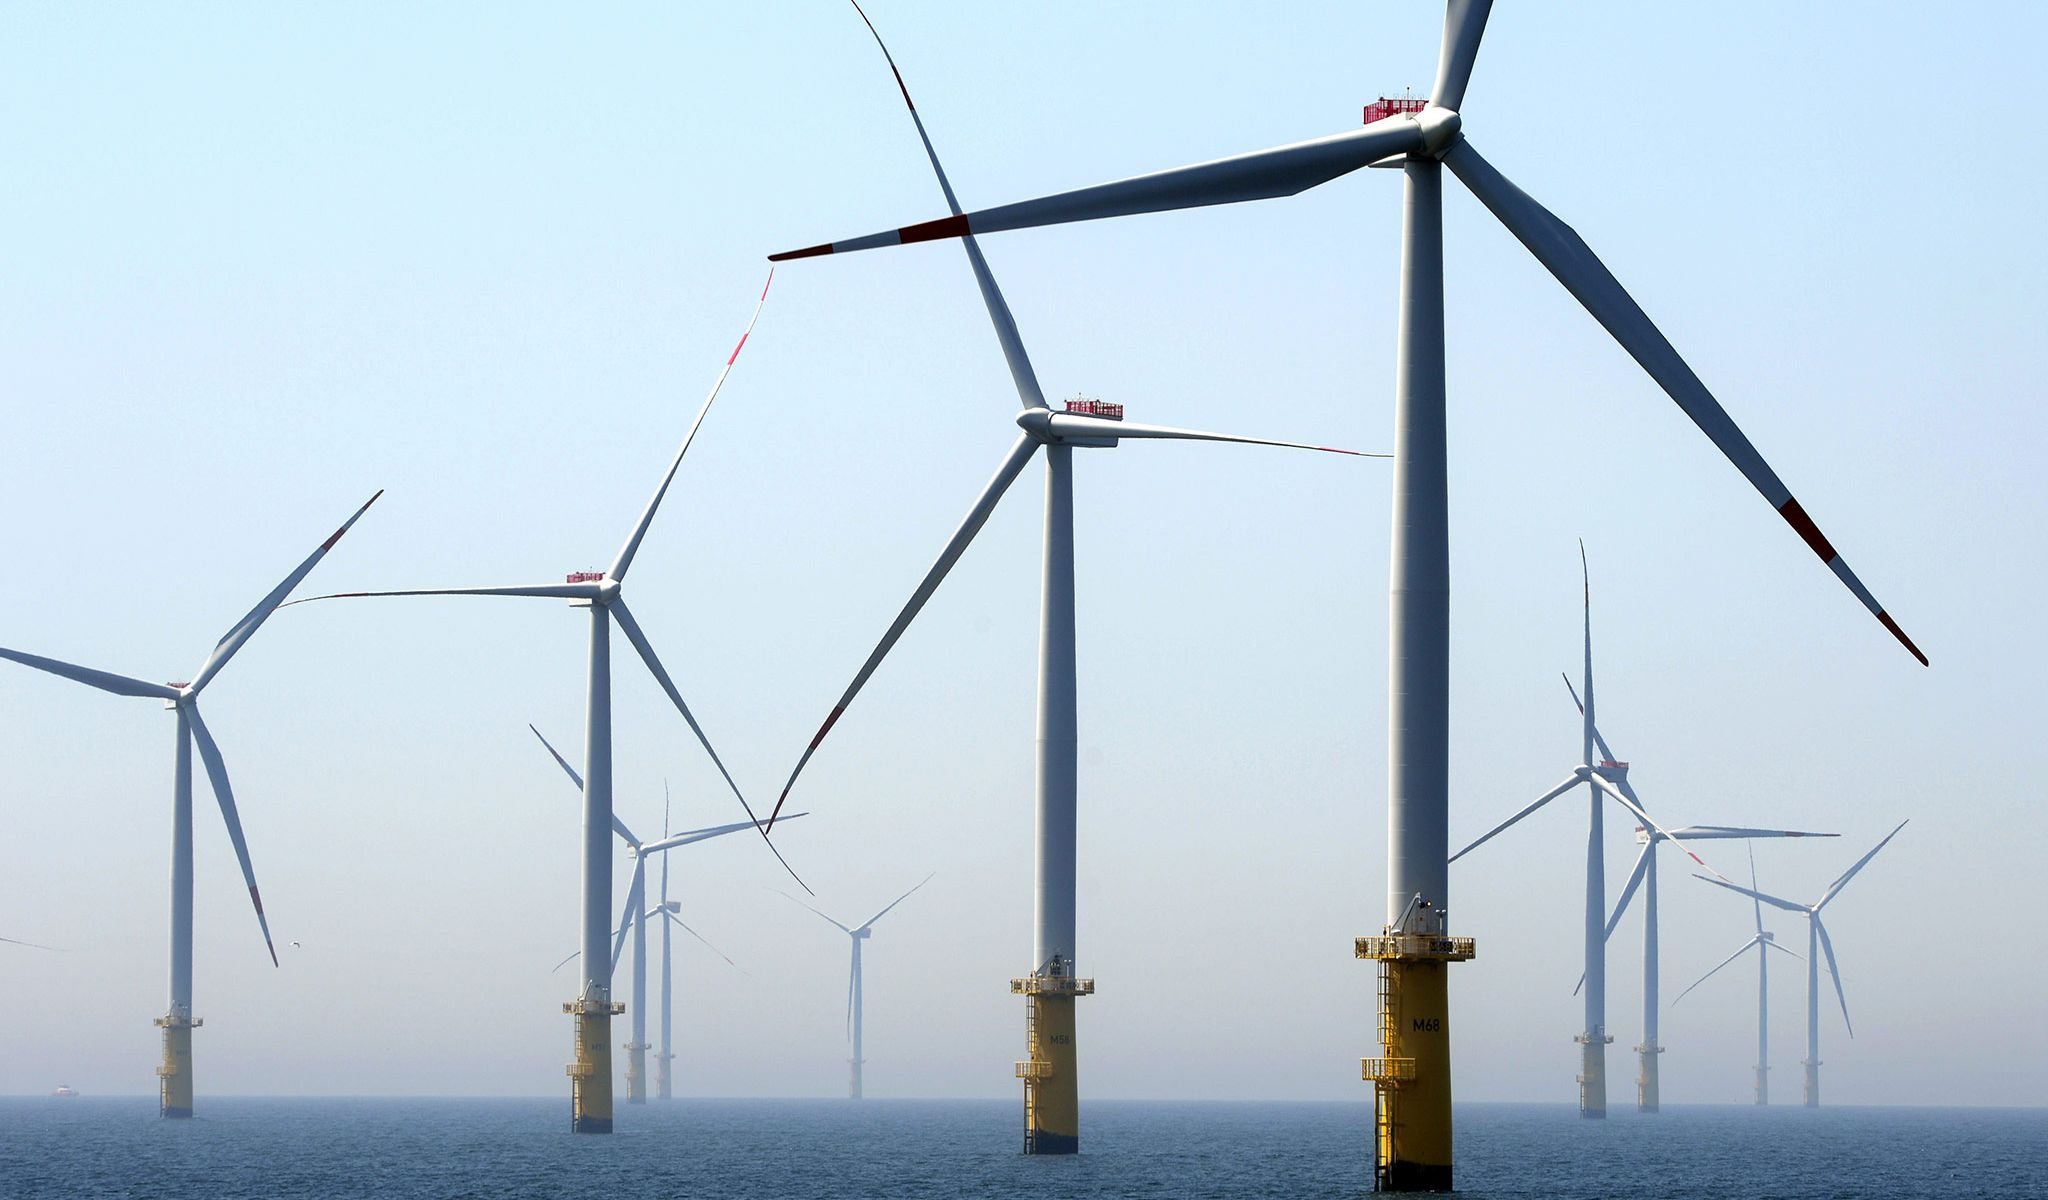 Oceaneering to clear seabed for Moray East offshore wind farm